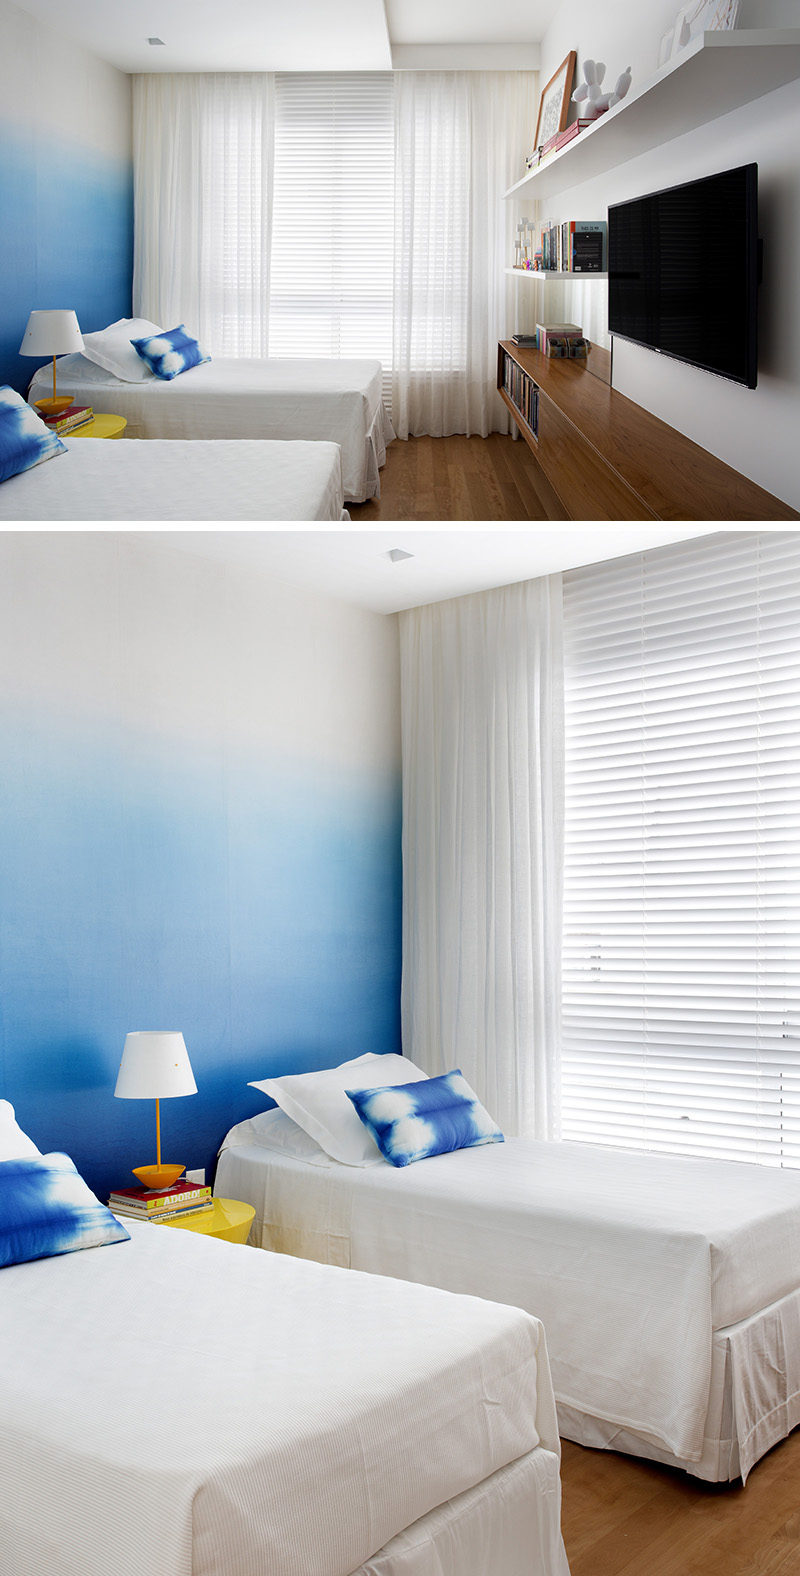 Bedroom design ideas create an ombre wall for a colorful for Bedroom design creator